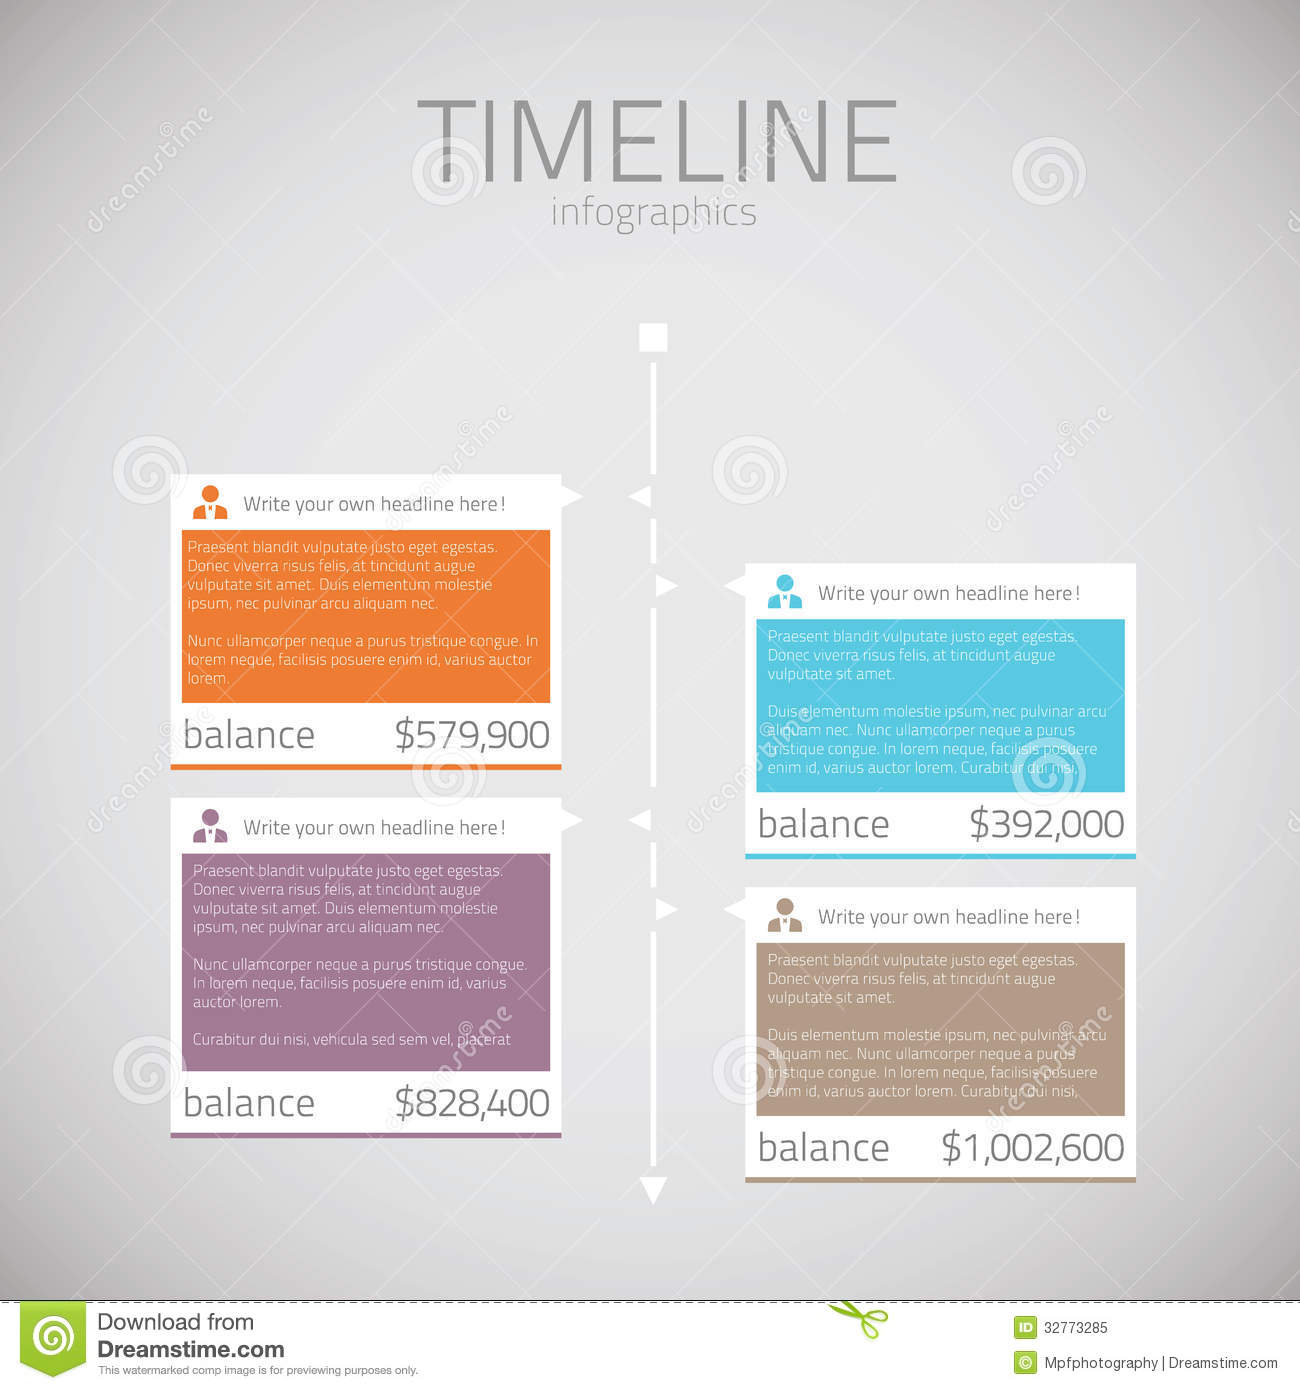 8 Vector Infographic Template Images - Free Infographic ...